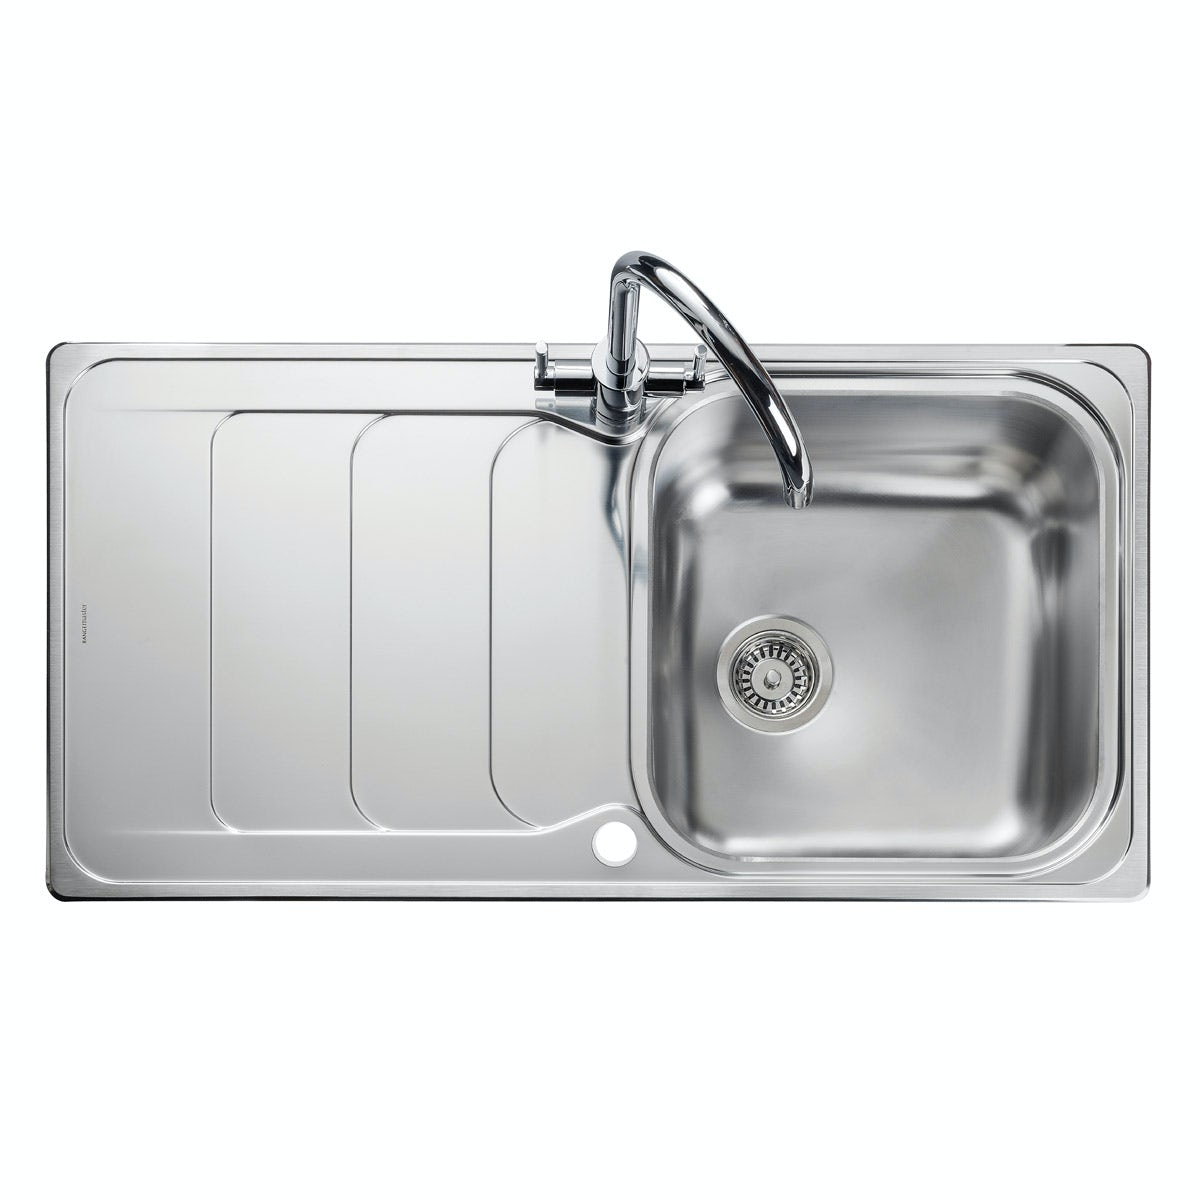 Rangemaster Houston 1.0 bowl reversible kitchen sink with waste kit